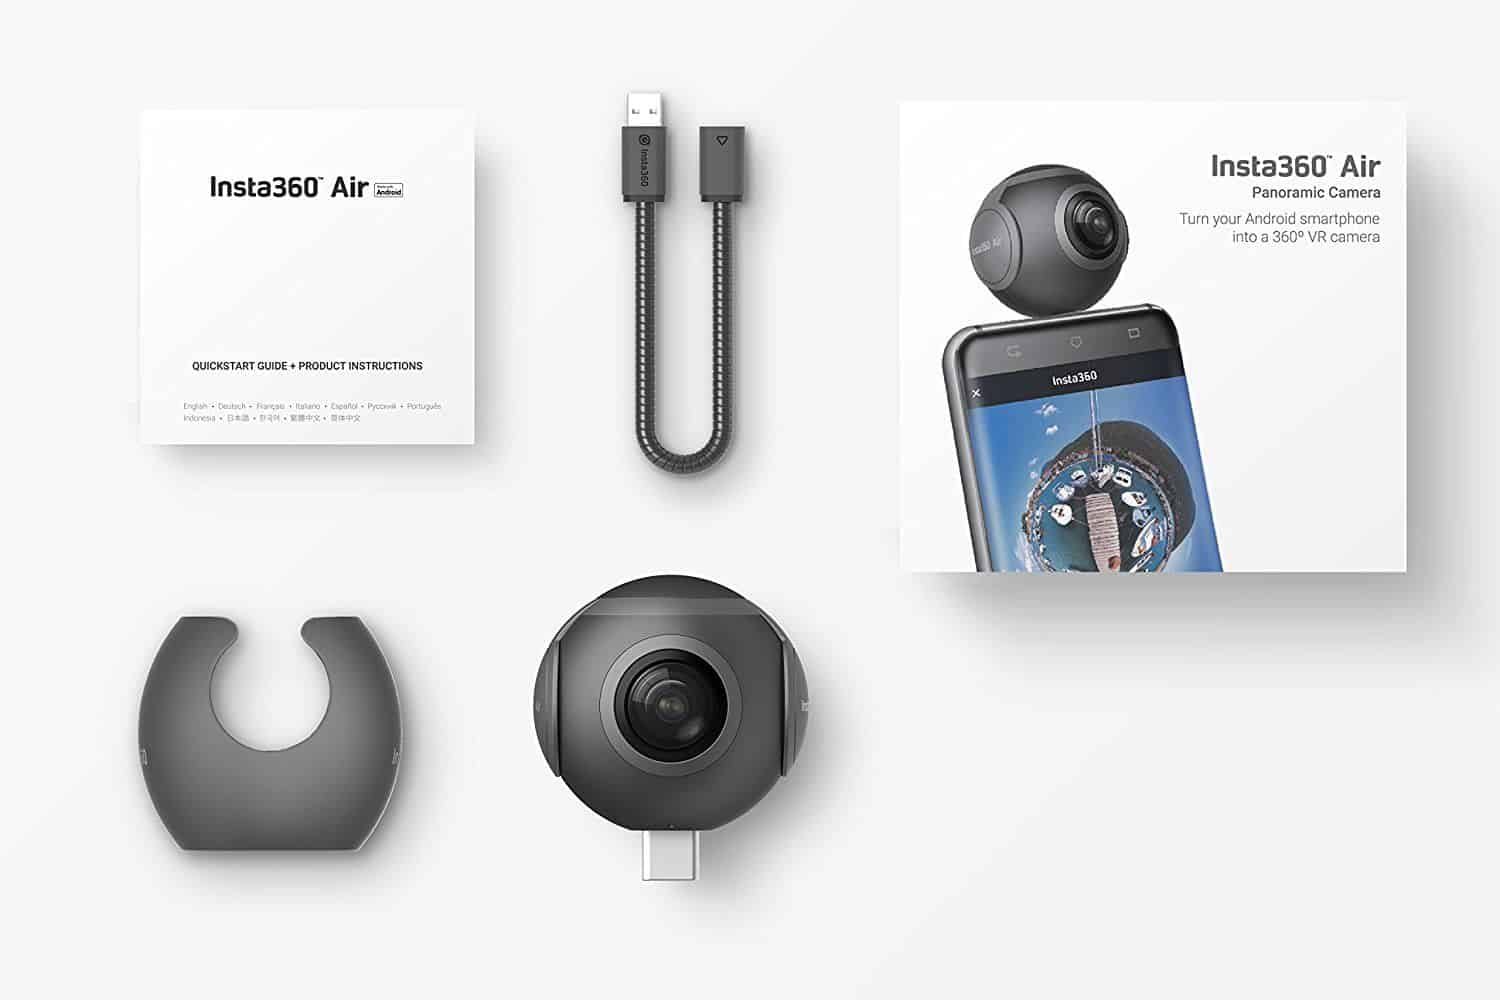 amazon Insta360 Air reviews Insta360 Air on amazon newest Insta360 Air prices of Insta360 Air Insta360 Air deals best deals on Insta360 Air buying a Insta360 Air lastest Insta360 Air what is a Insta360 Air Insta360 Air at amazon where to buy Insta360 Air where can i you get a Insta360 Air online purchase Insta360 Air Insta360 Air sale off Insta360 Air discount cheapest Insta360 Air Insta360 Air for sale Insta360 Air products Insta360 Air tutorial Insta360 Air specification Insta360 Air features Insta360 Air test Insta360 Air series Insta360 Air service manual Insta360 Air instructions Insta360 Air accessories insta360 air app insta360 air accessories insta360 air android insta360 air apk insta360 air and insta360 one insta360 air australia insta360 air camera insta360 air camera for android devices insta360 air compatible phones insta360 air camera for android insta360 air canada insta360 air camera review insta360 air download insta360 air ebay insta360 air for android insta360 air flipkart insta360 air for android price insta360 air firmware update insta360 air giá insta360 air india insta360 air iphone insta360 air lazada insta360 air live stream insta360 air malaysia insta360 air micro usb insta360 air manual insta360 air mount insta360 air not working insta360 air price insta360 air philippines insta360 air pantip insta360 air pc insta360 air price philippines insta360 air photos insta360 air price hk insta360 air price in pakistan insta360 air price in bangladesh insta360 air price in india insta360 air review insta360 air resolution insta360 air specs insta360 air singapore insta360 air sample photos insta360 air skype insta360 air sample insta360 air specification insta360 air software insta360 air south africa insta360 air tips insta360 air tripod insta360 air tutorial insta360 air type c insta360 air usb c insta360 air usb adapter insta360 air uk insta360 air usb insta360 air user manual insta360 air unboxing insta360 air vs nano insta360 air vs samsung gear 360 insta360 air video insta360 air vr pan camera with micro usb connector insta360 pro vr insta360 air vs insta360 air vs lg 360 insta360 air vs gear 360 insta360 air webcam insta360 air youtube insta360 air 360 camera insta360 air 360° 3k vr camera for android (type c) insta360 air 3k insta360 air 360 degree dual 3k lens vr video camera